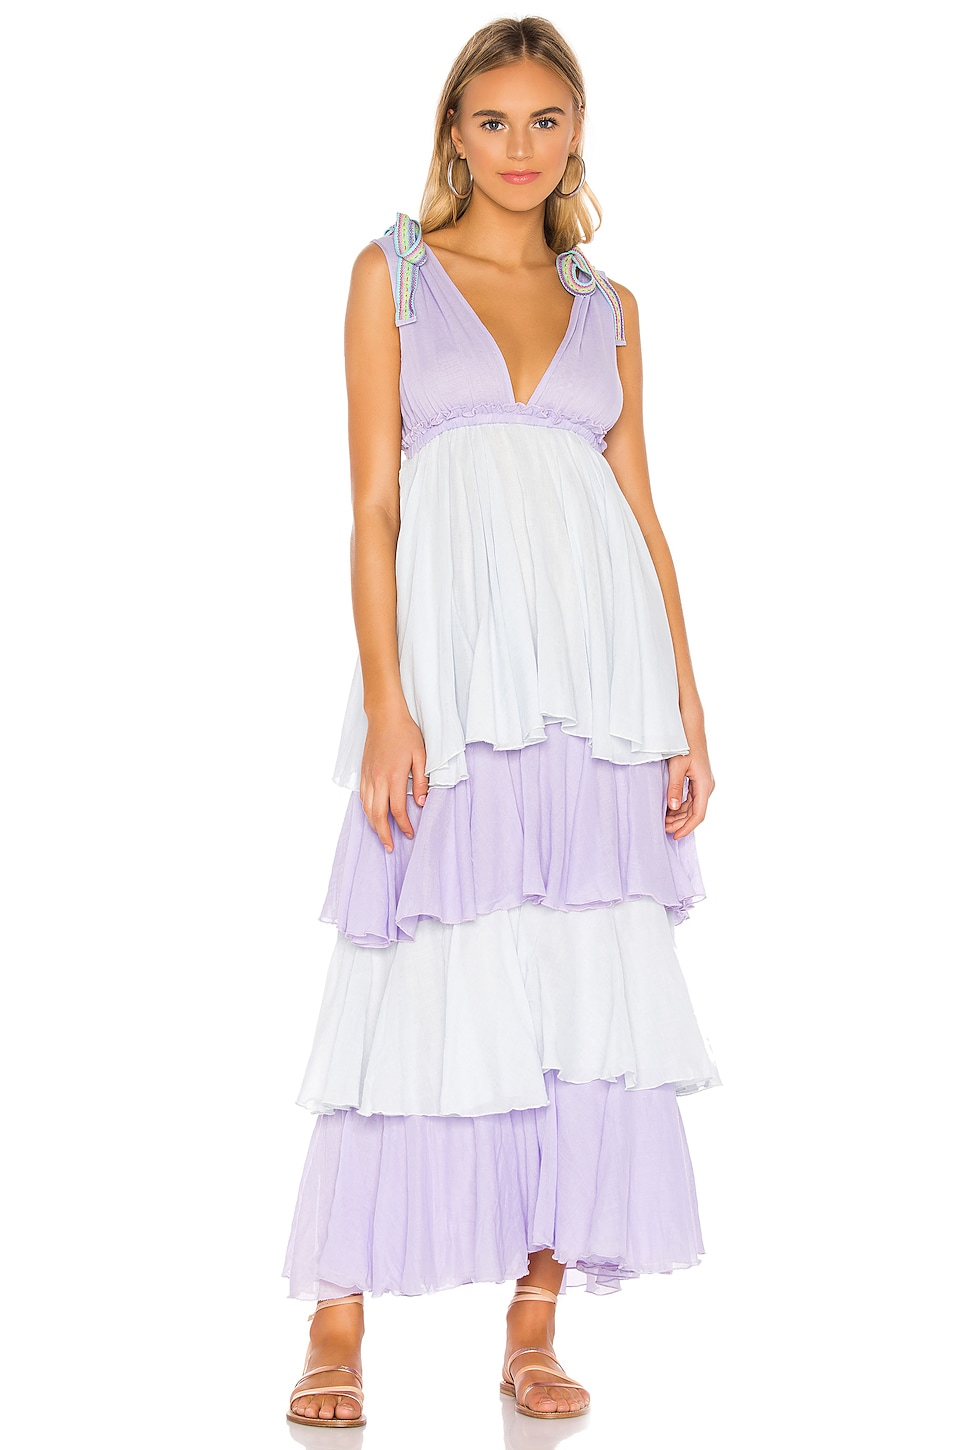 Pitusa Alma Dress in Orchid Ice & Arctic Ice